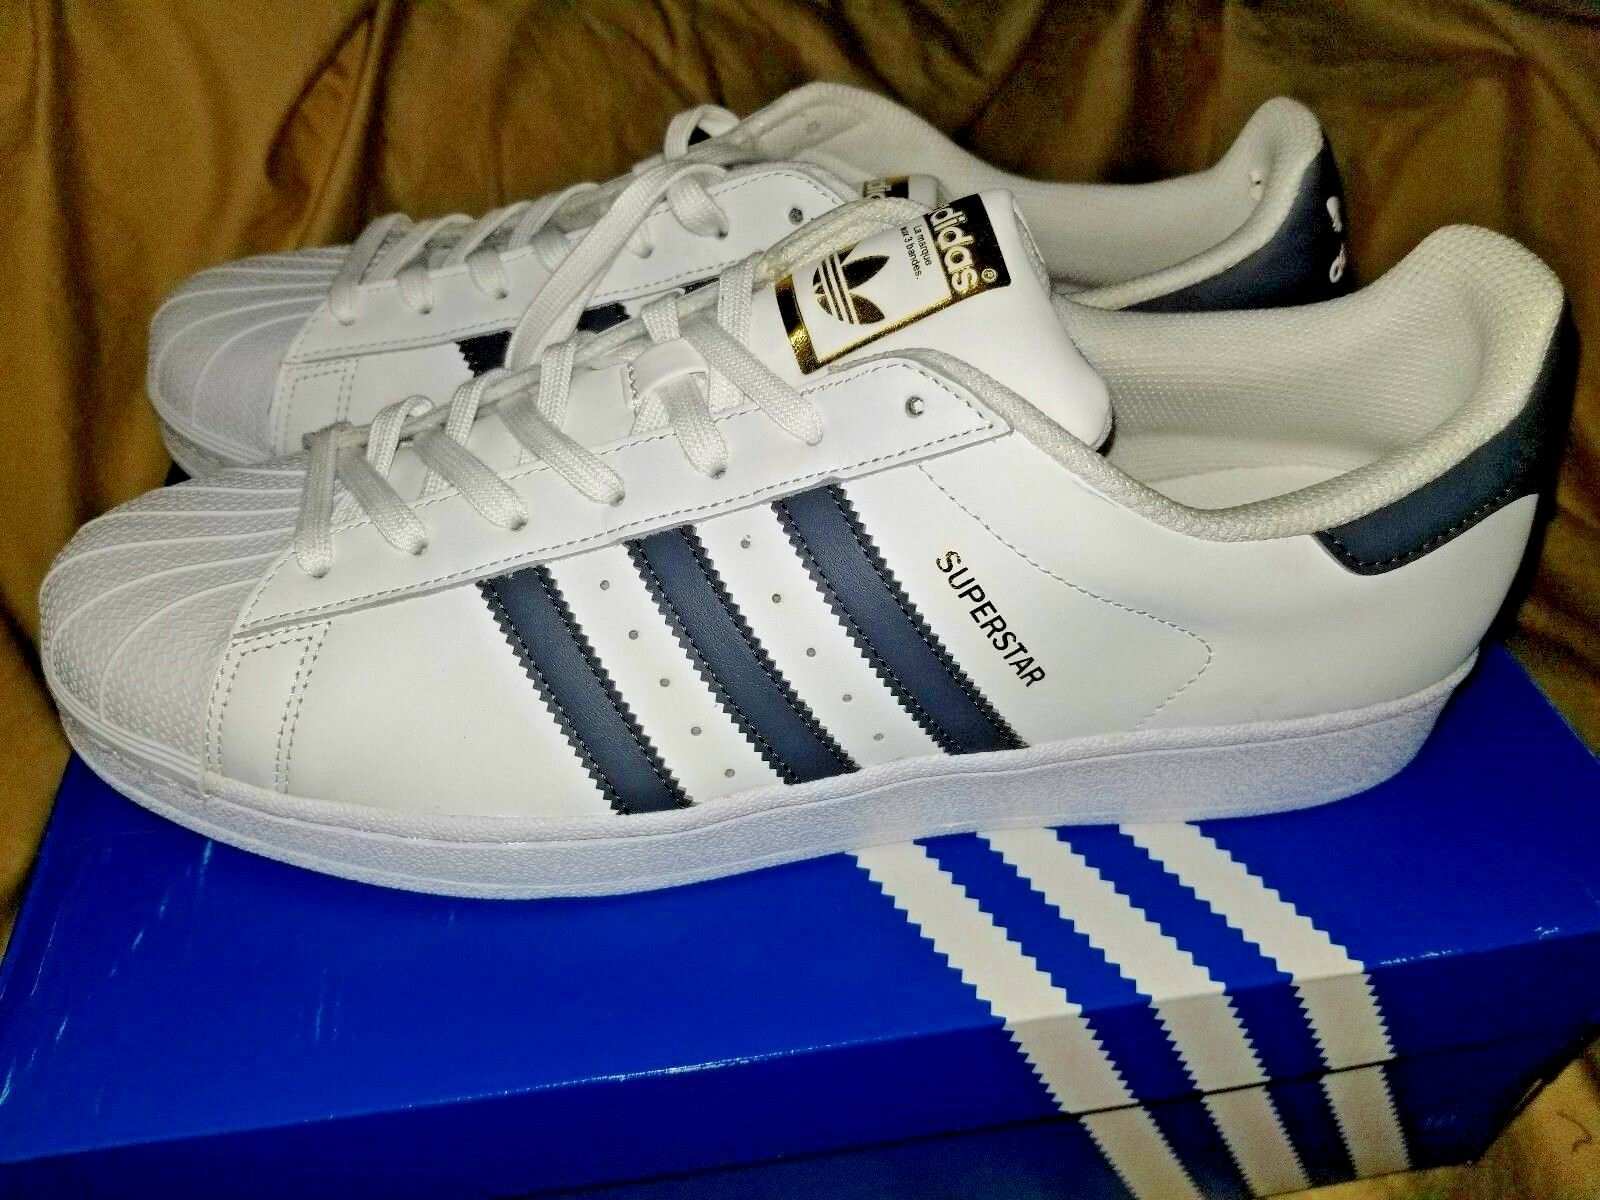 Adidas original  Superstar white  with grey stripes mens  sneakers size 13